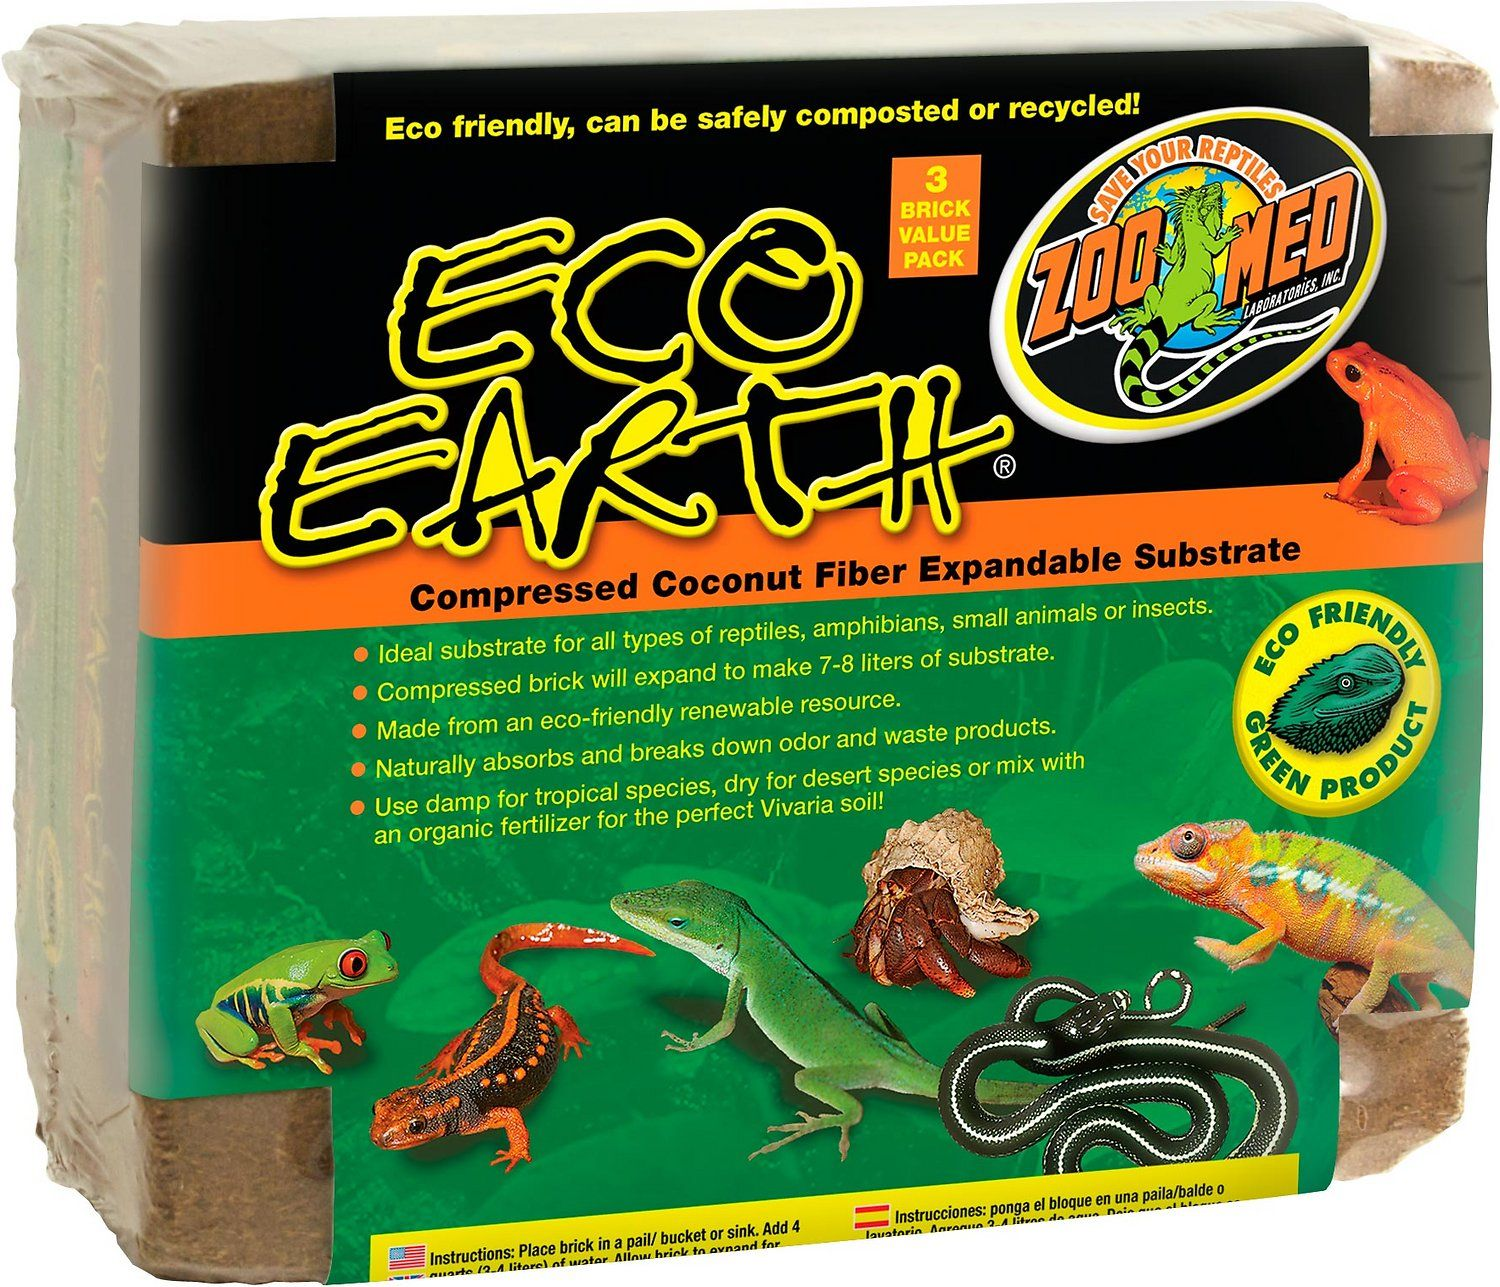 Zoo Med Eco Earth pressed Coconut Fiber Expandable Reptile